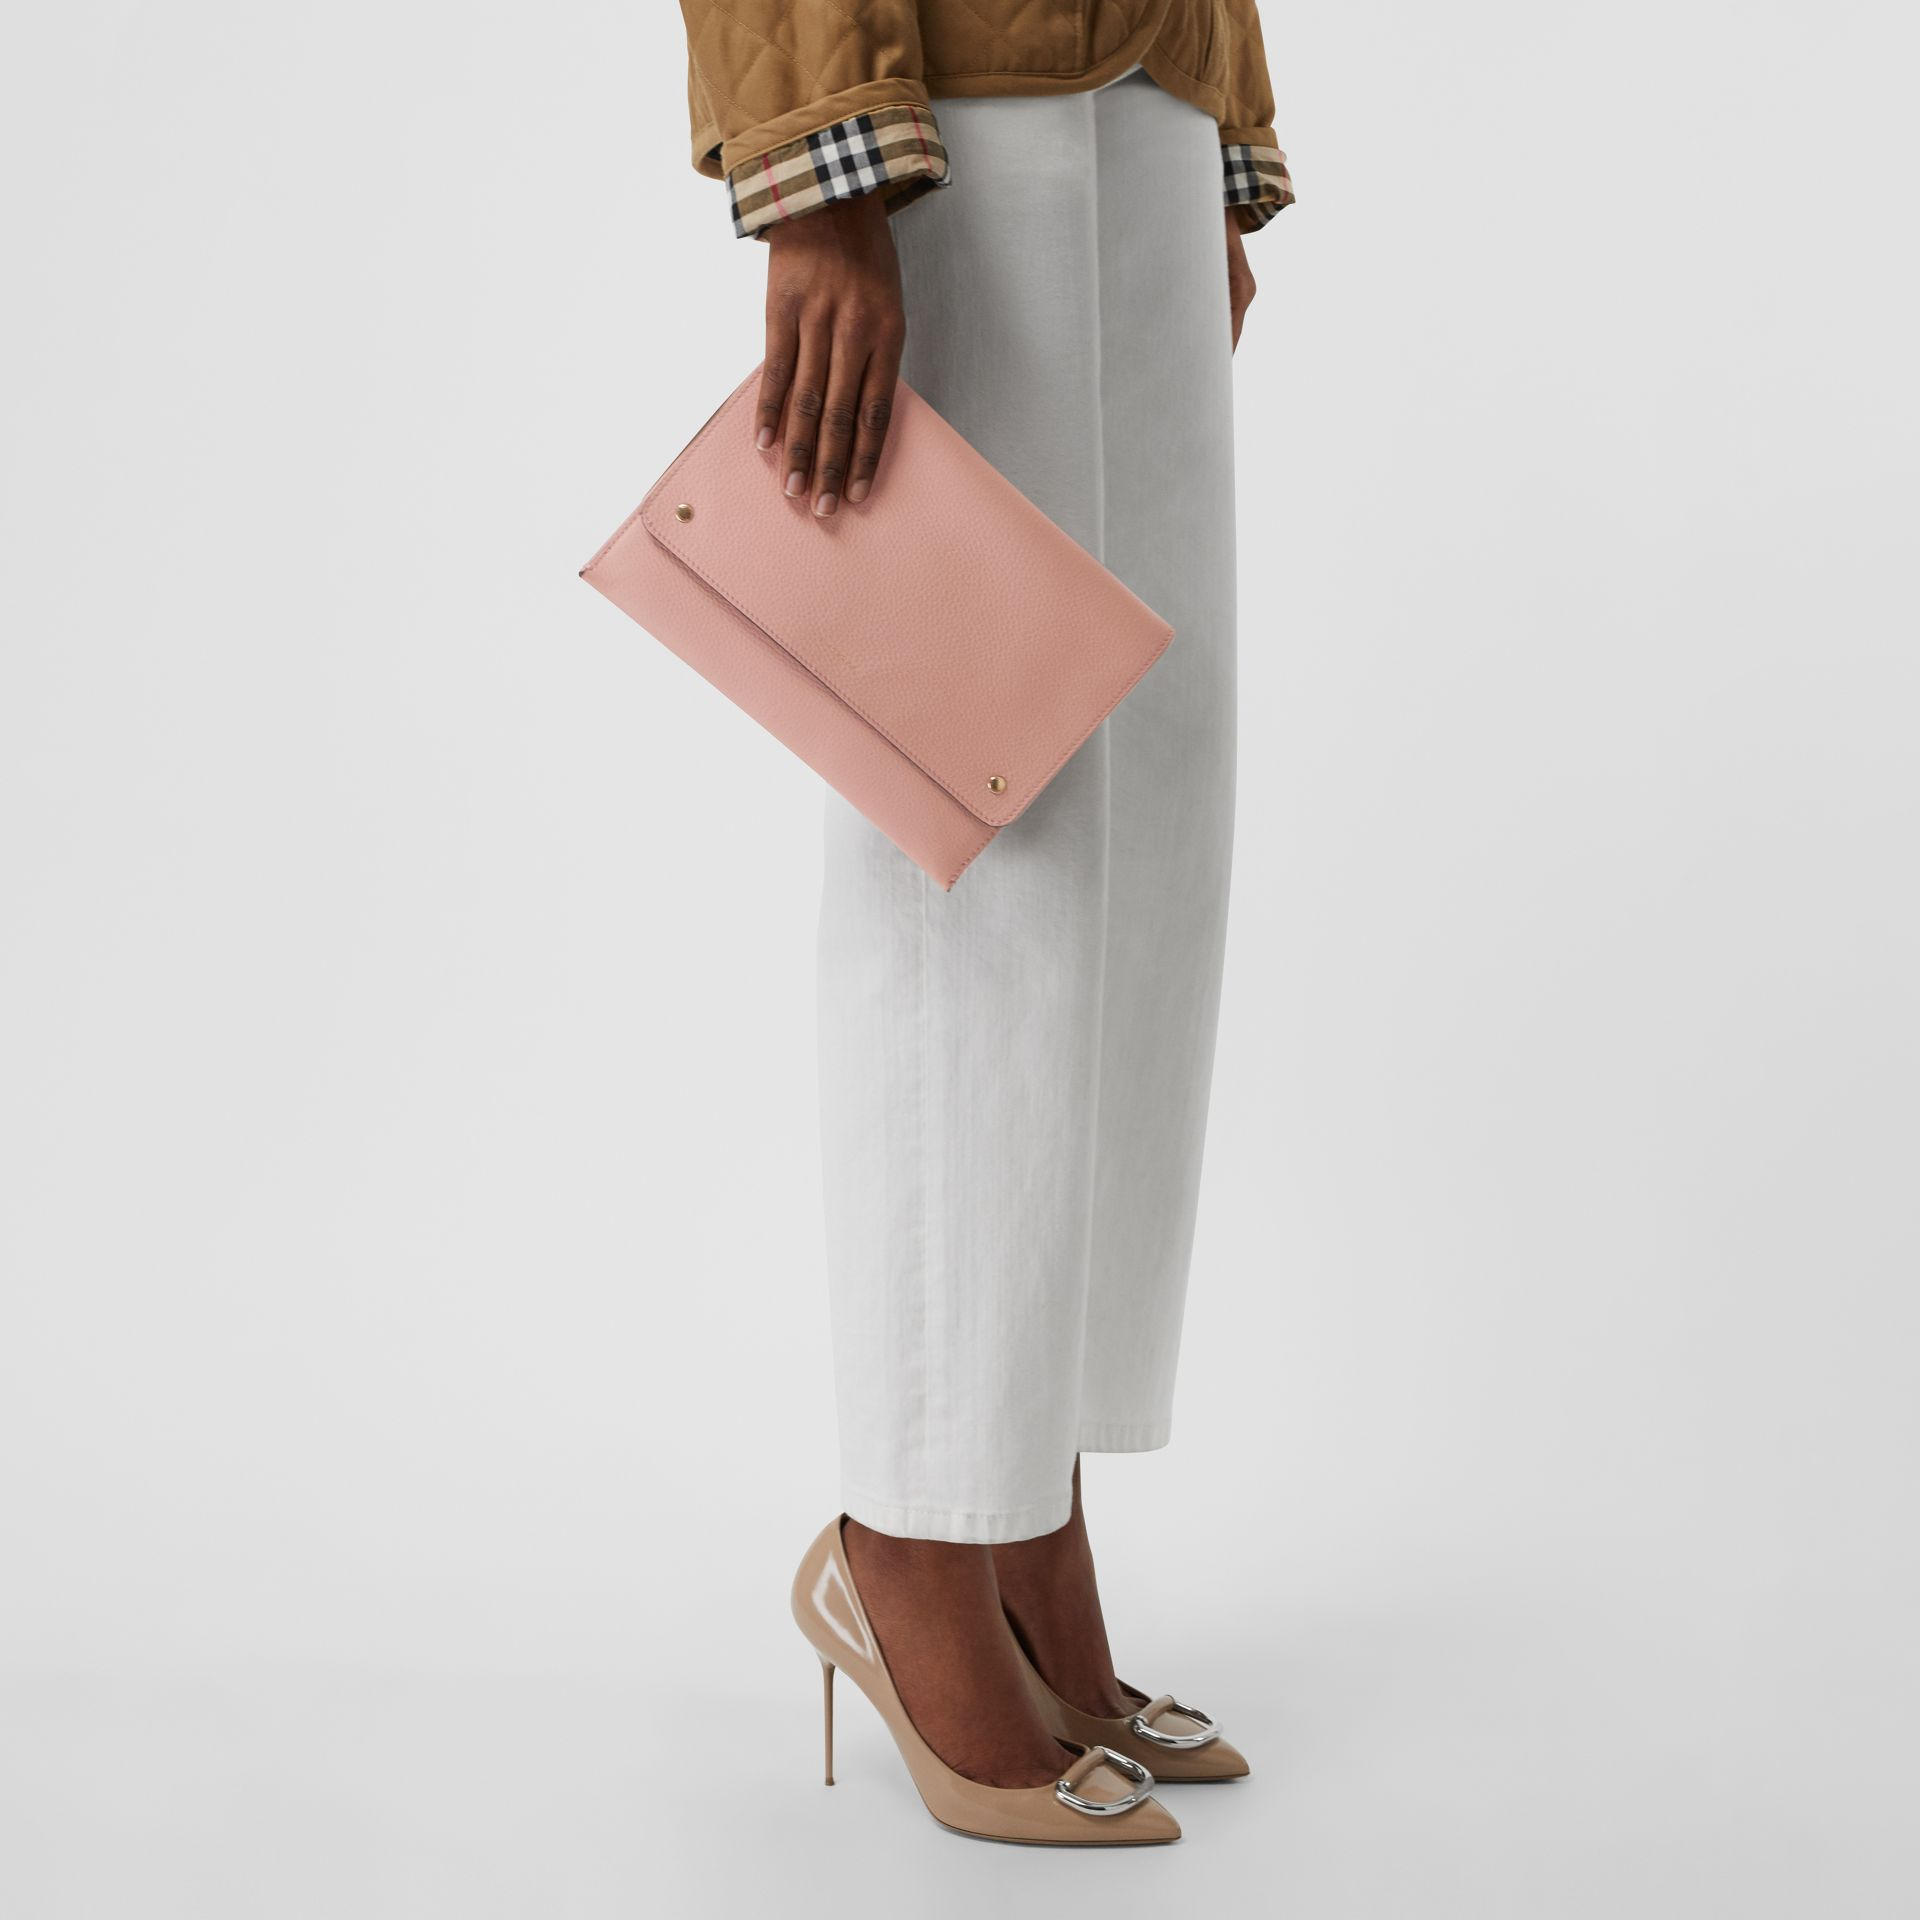 Leather Envelope Crossbody Bag in Ash Rose - Women | Burberry United States - gallery image 3